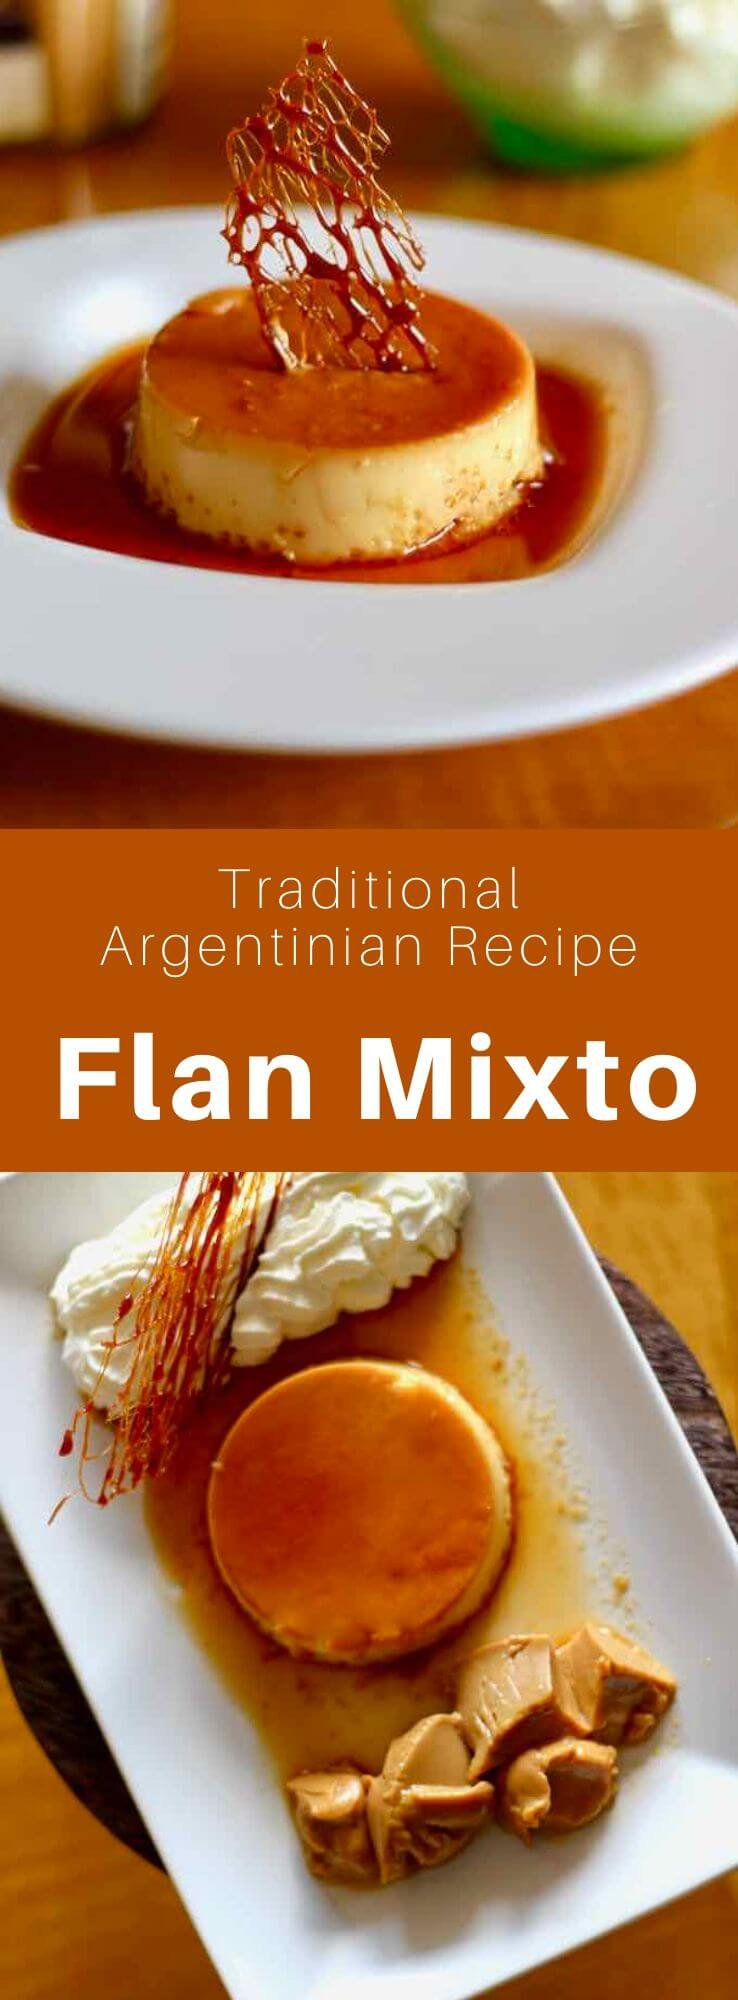 The flan mixto or flan casero mixto is a popular Argentinian, Uruguayan and Mexican dessert. Caramel custard with dulce de leche and whipped cream. #Argentina #ArgentinianRecipe #ArgentinianFood #ArgentinianCuisine #WorldCuisine #196flavors